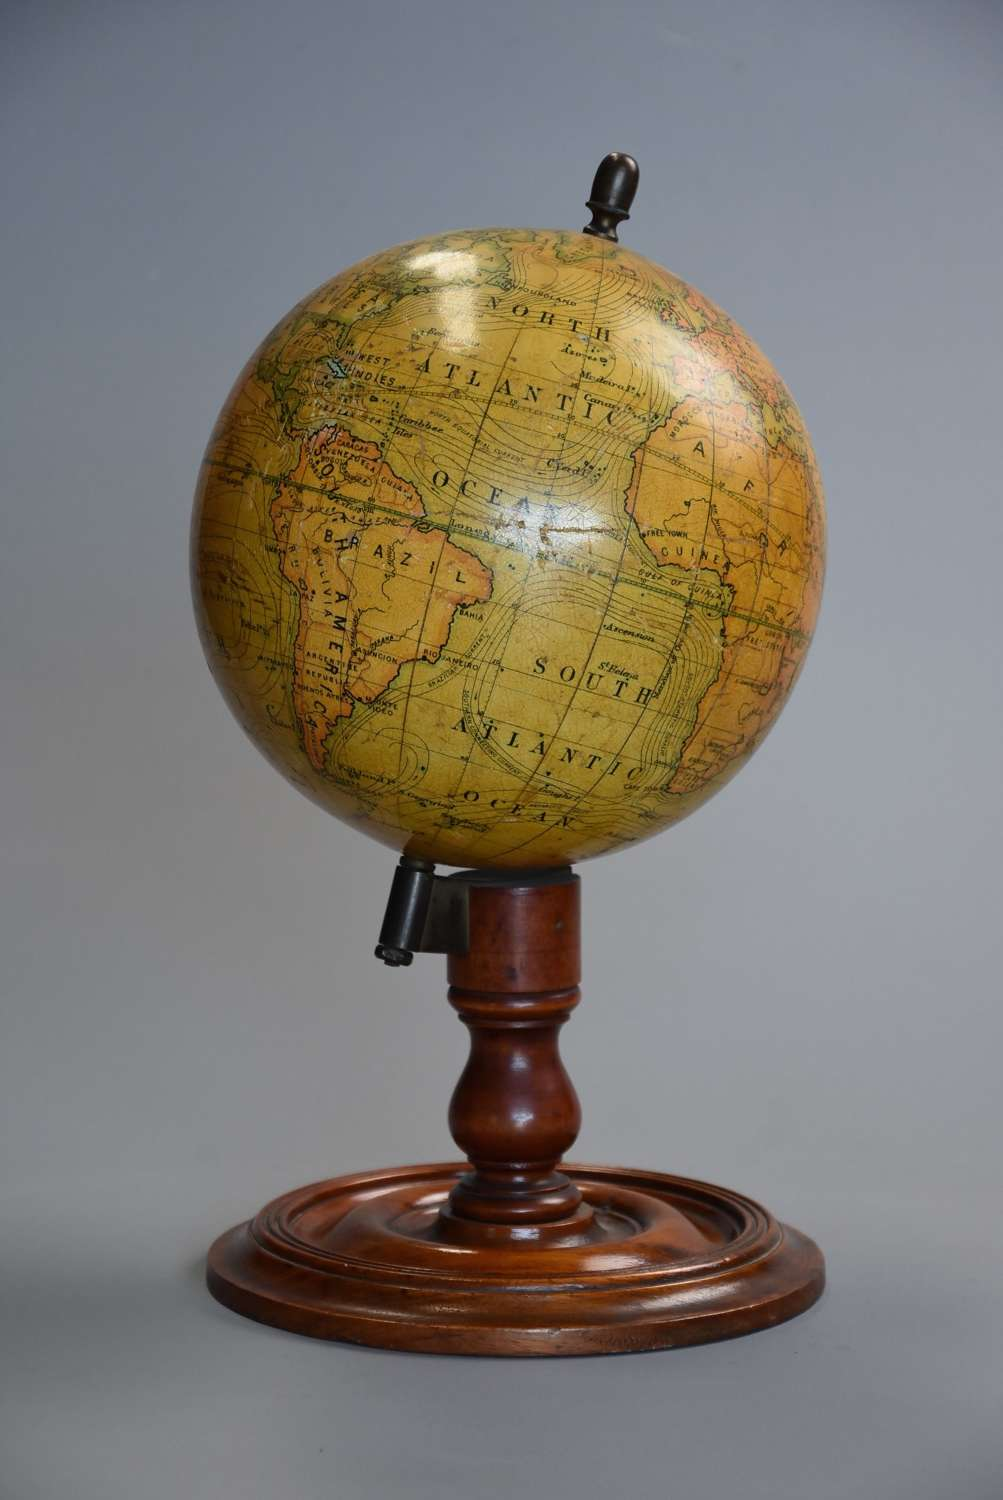 Early 20thc educational table globe by E.J. Arnold & Sons Ltd. Leeds